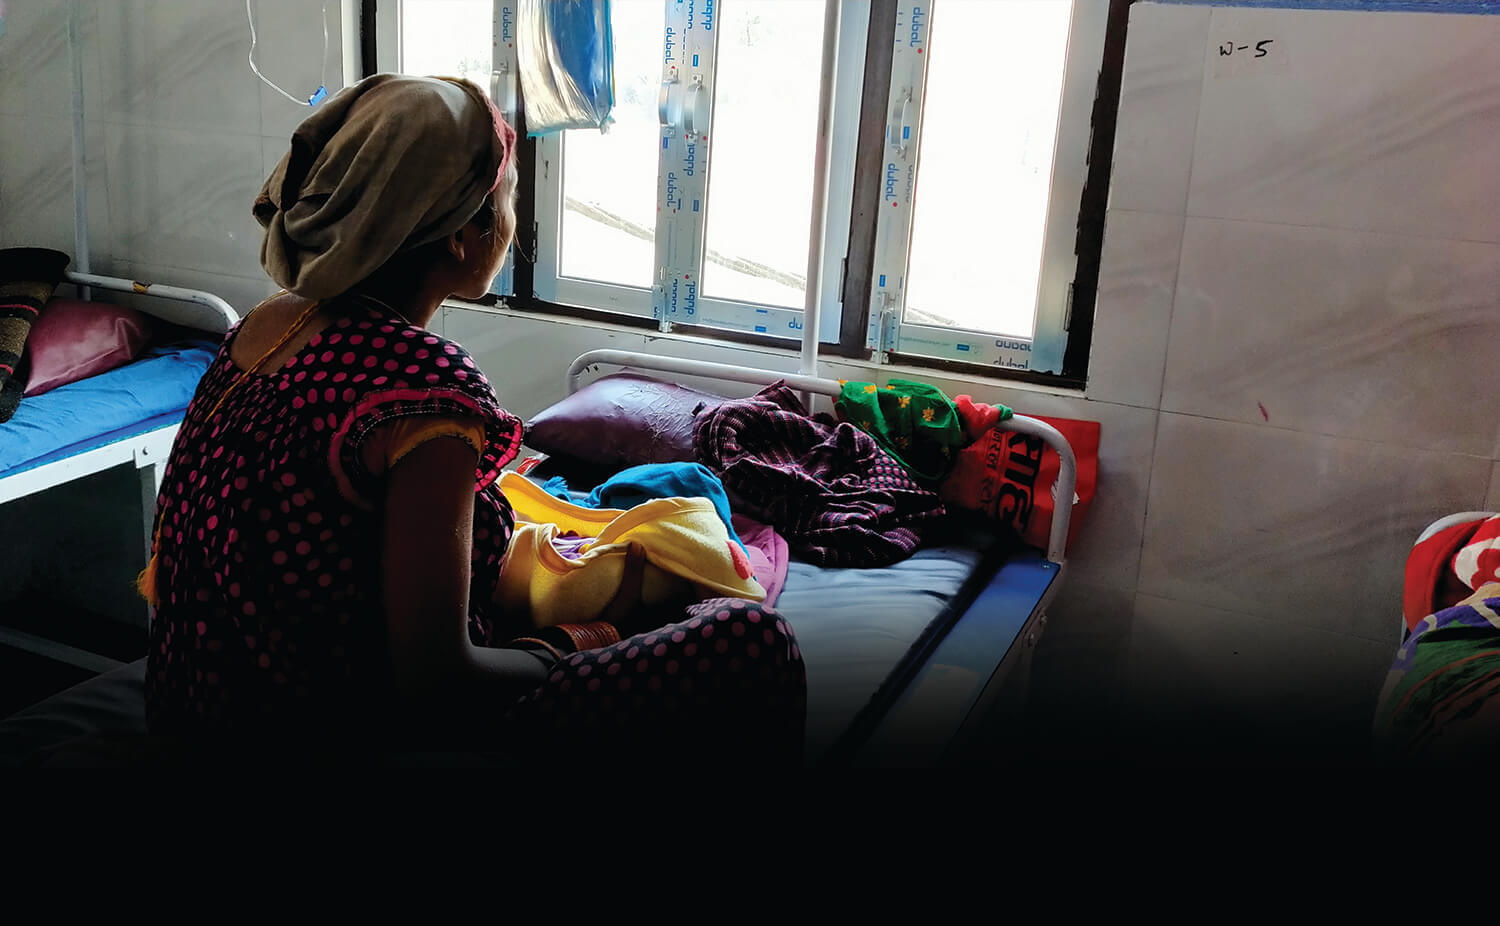 Alarming rise in violence against women